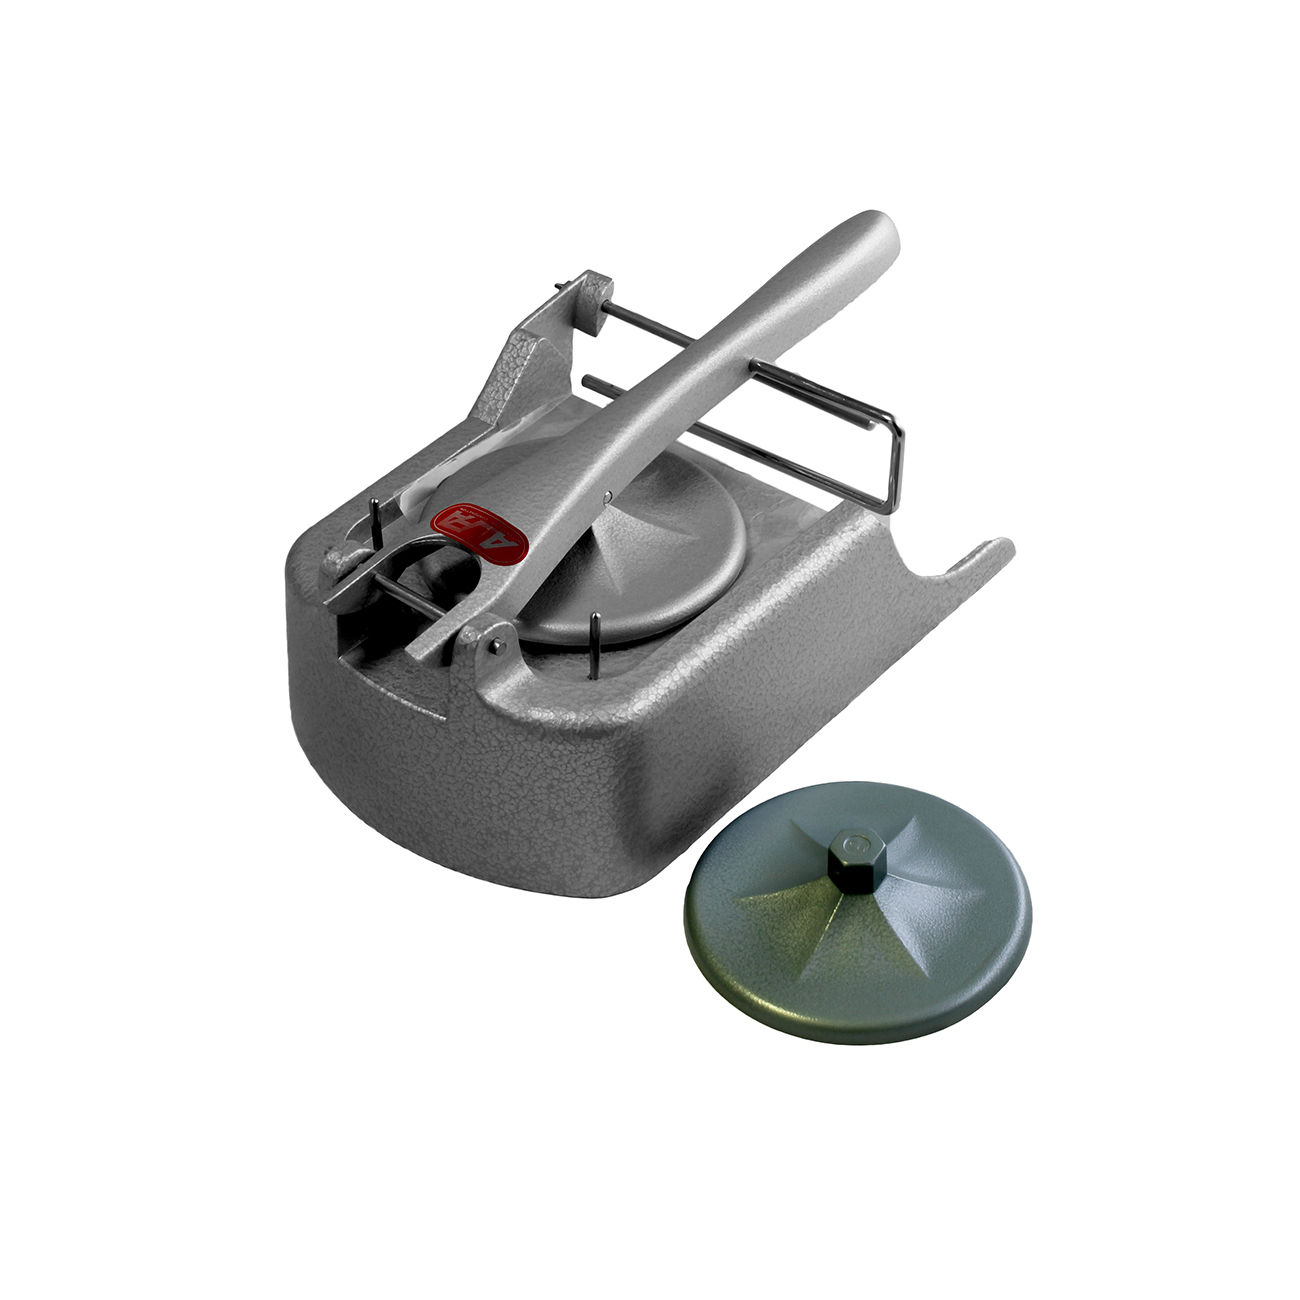 kitchen aid slicer with Patty Maker With 2 Molds on 131590418204 further The Best Kitchenaid Attachments You Need In Your Kitchen further KitchenAid Slicer Shredder furthermore 261854335779 additionally Kitchenaid Spiralizer Attachment Recipes.